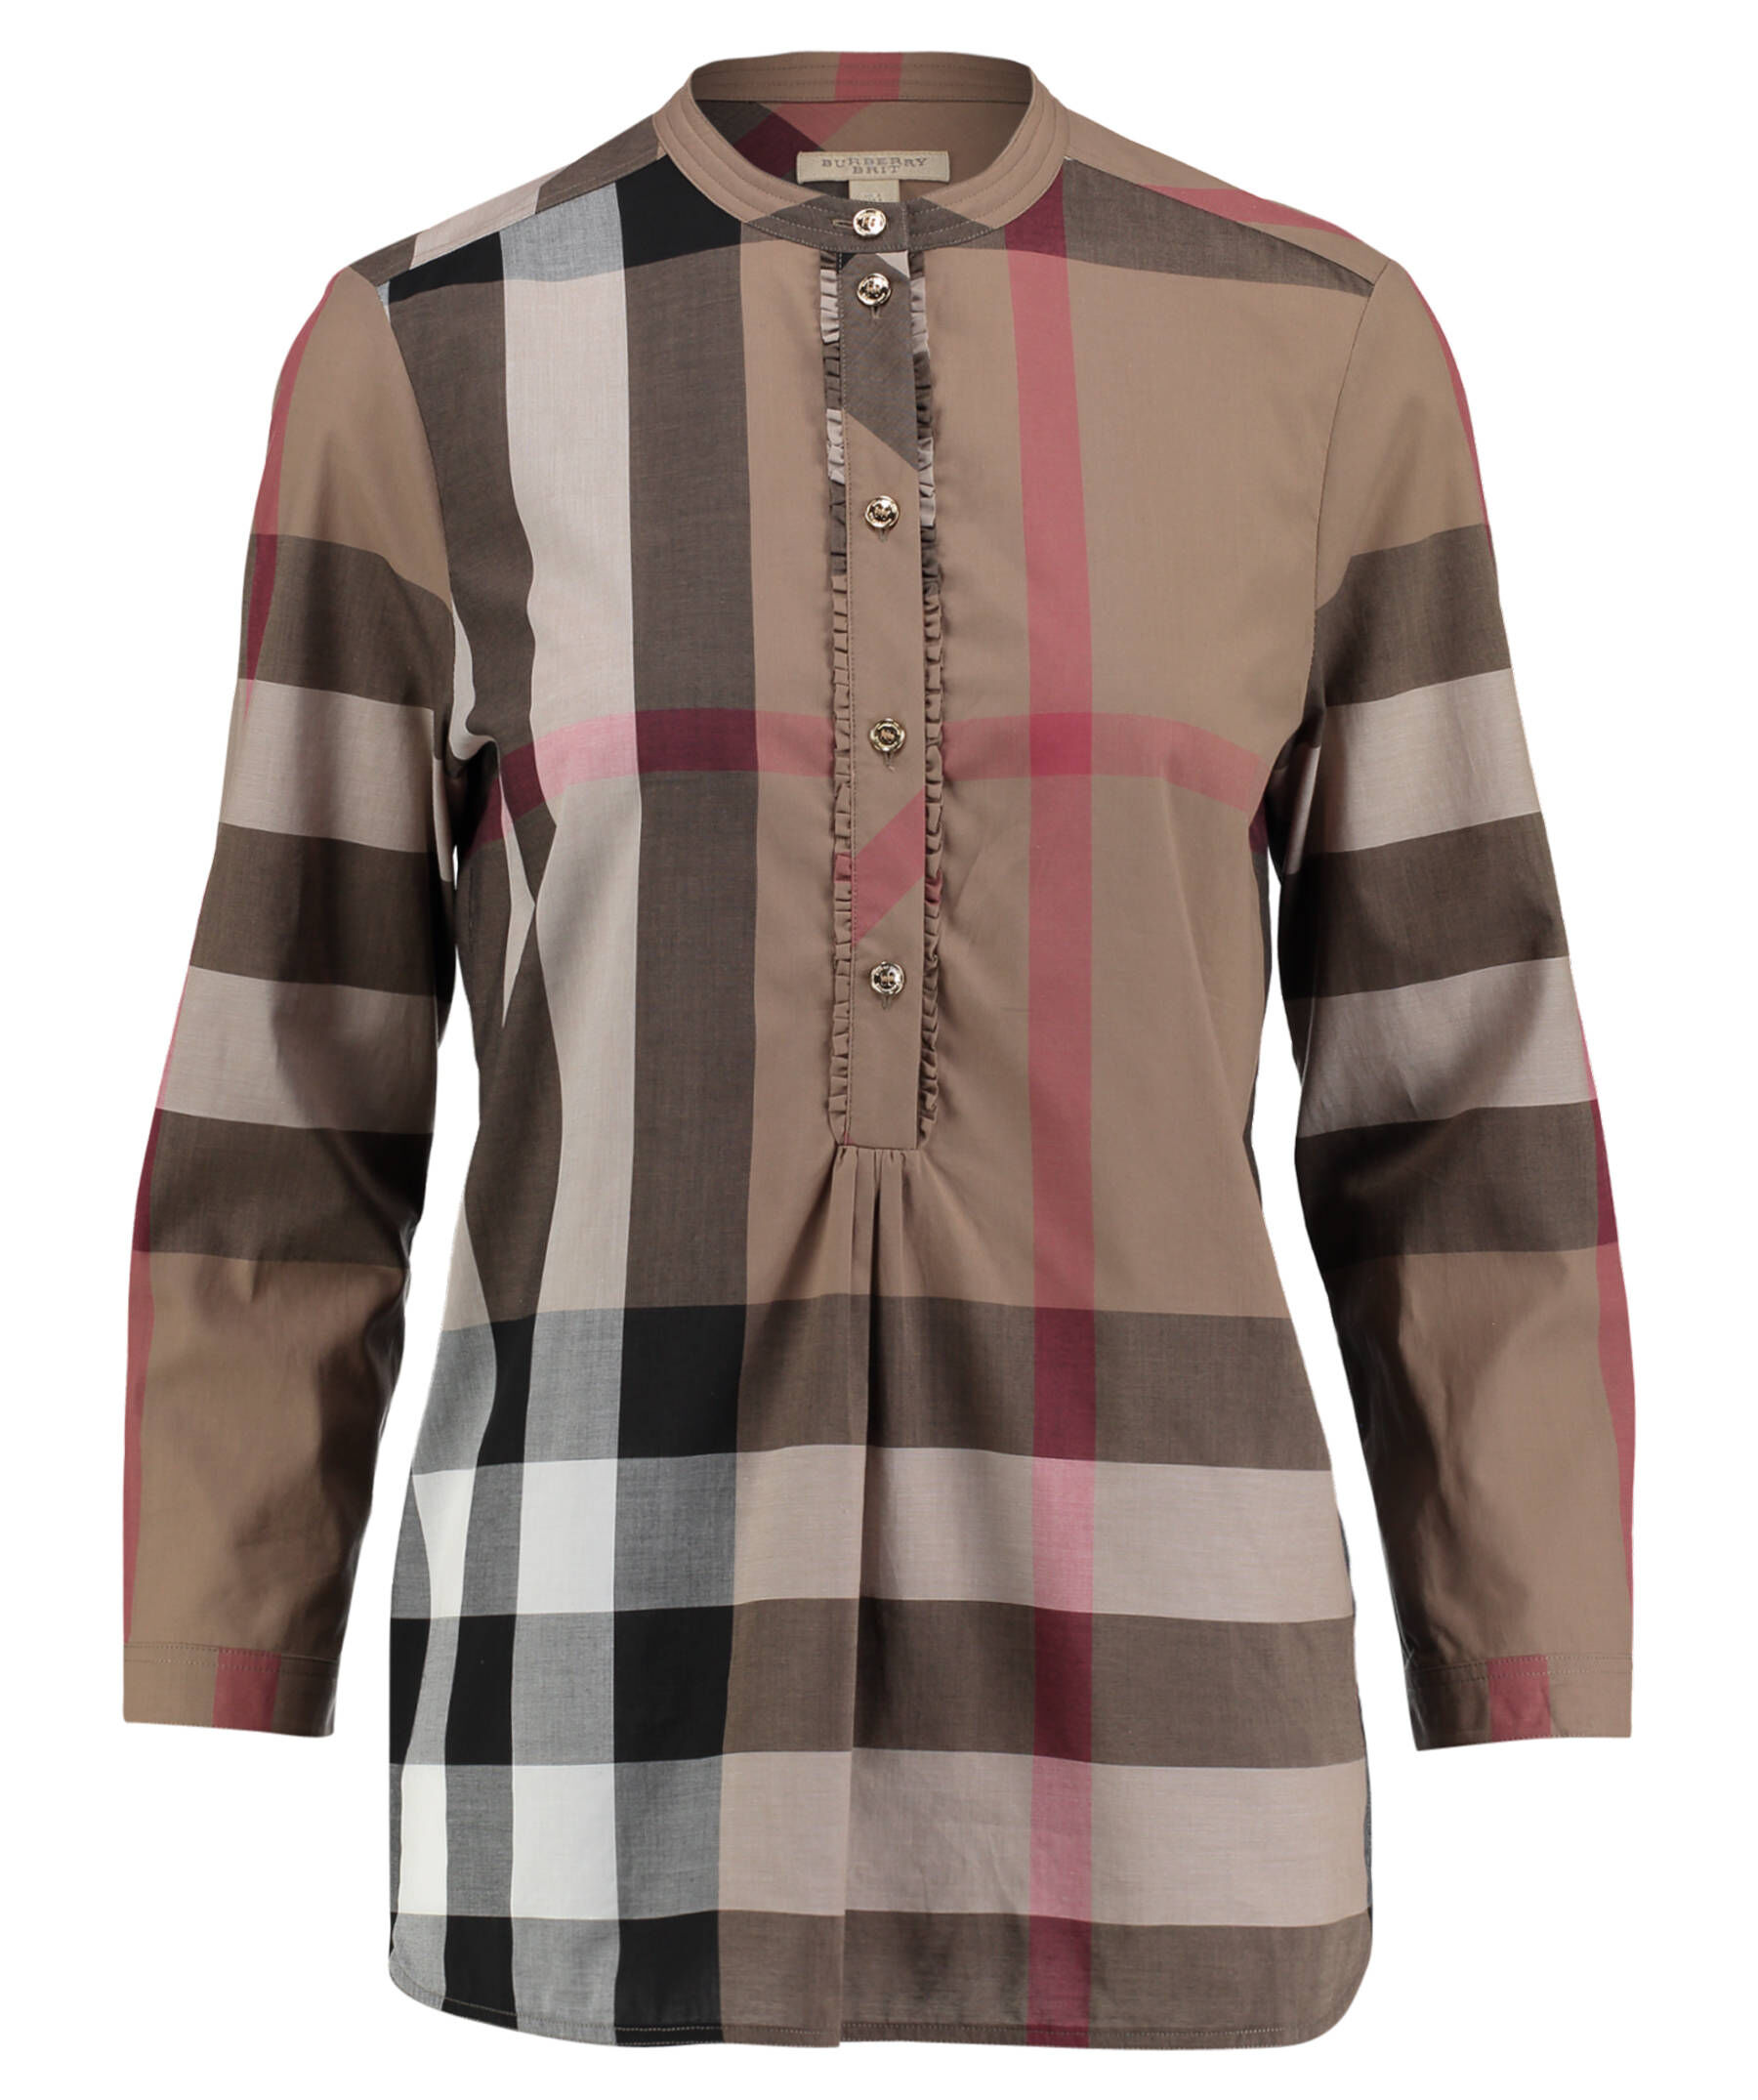 burberry hemd damen